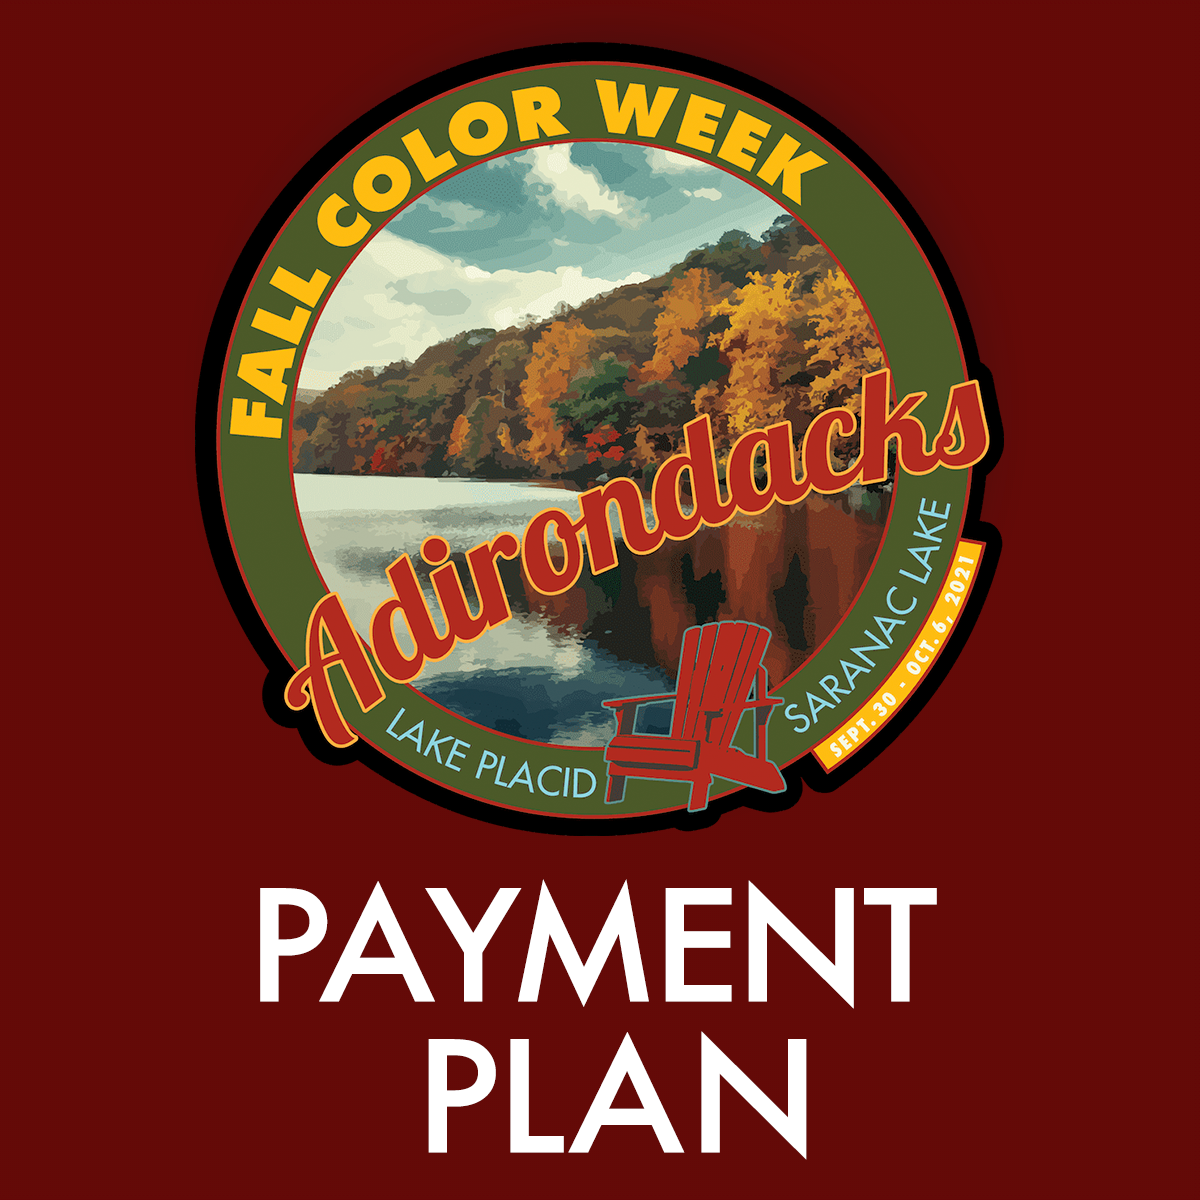 2021 Fall Color Week *** 4 PAYMENT PLAN ***